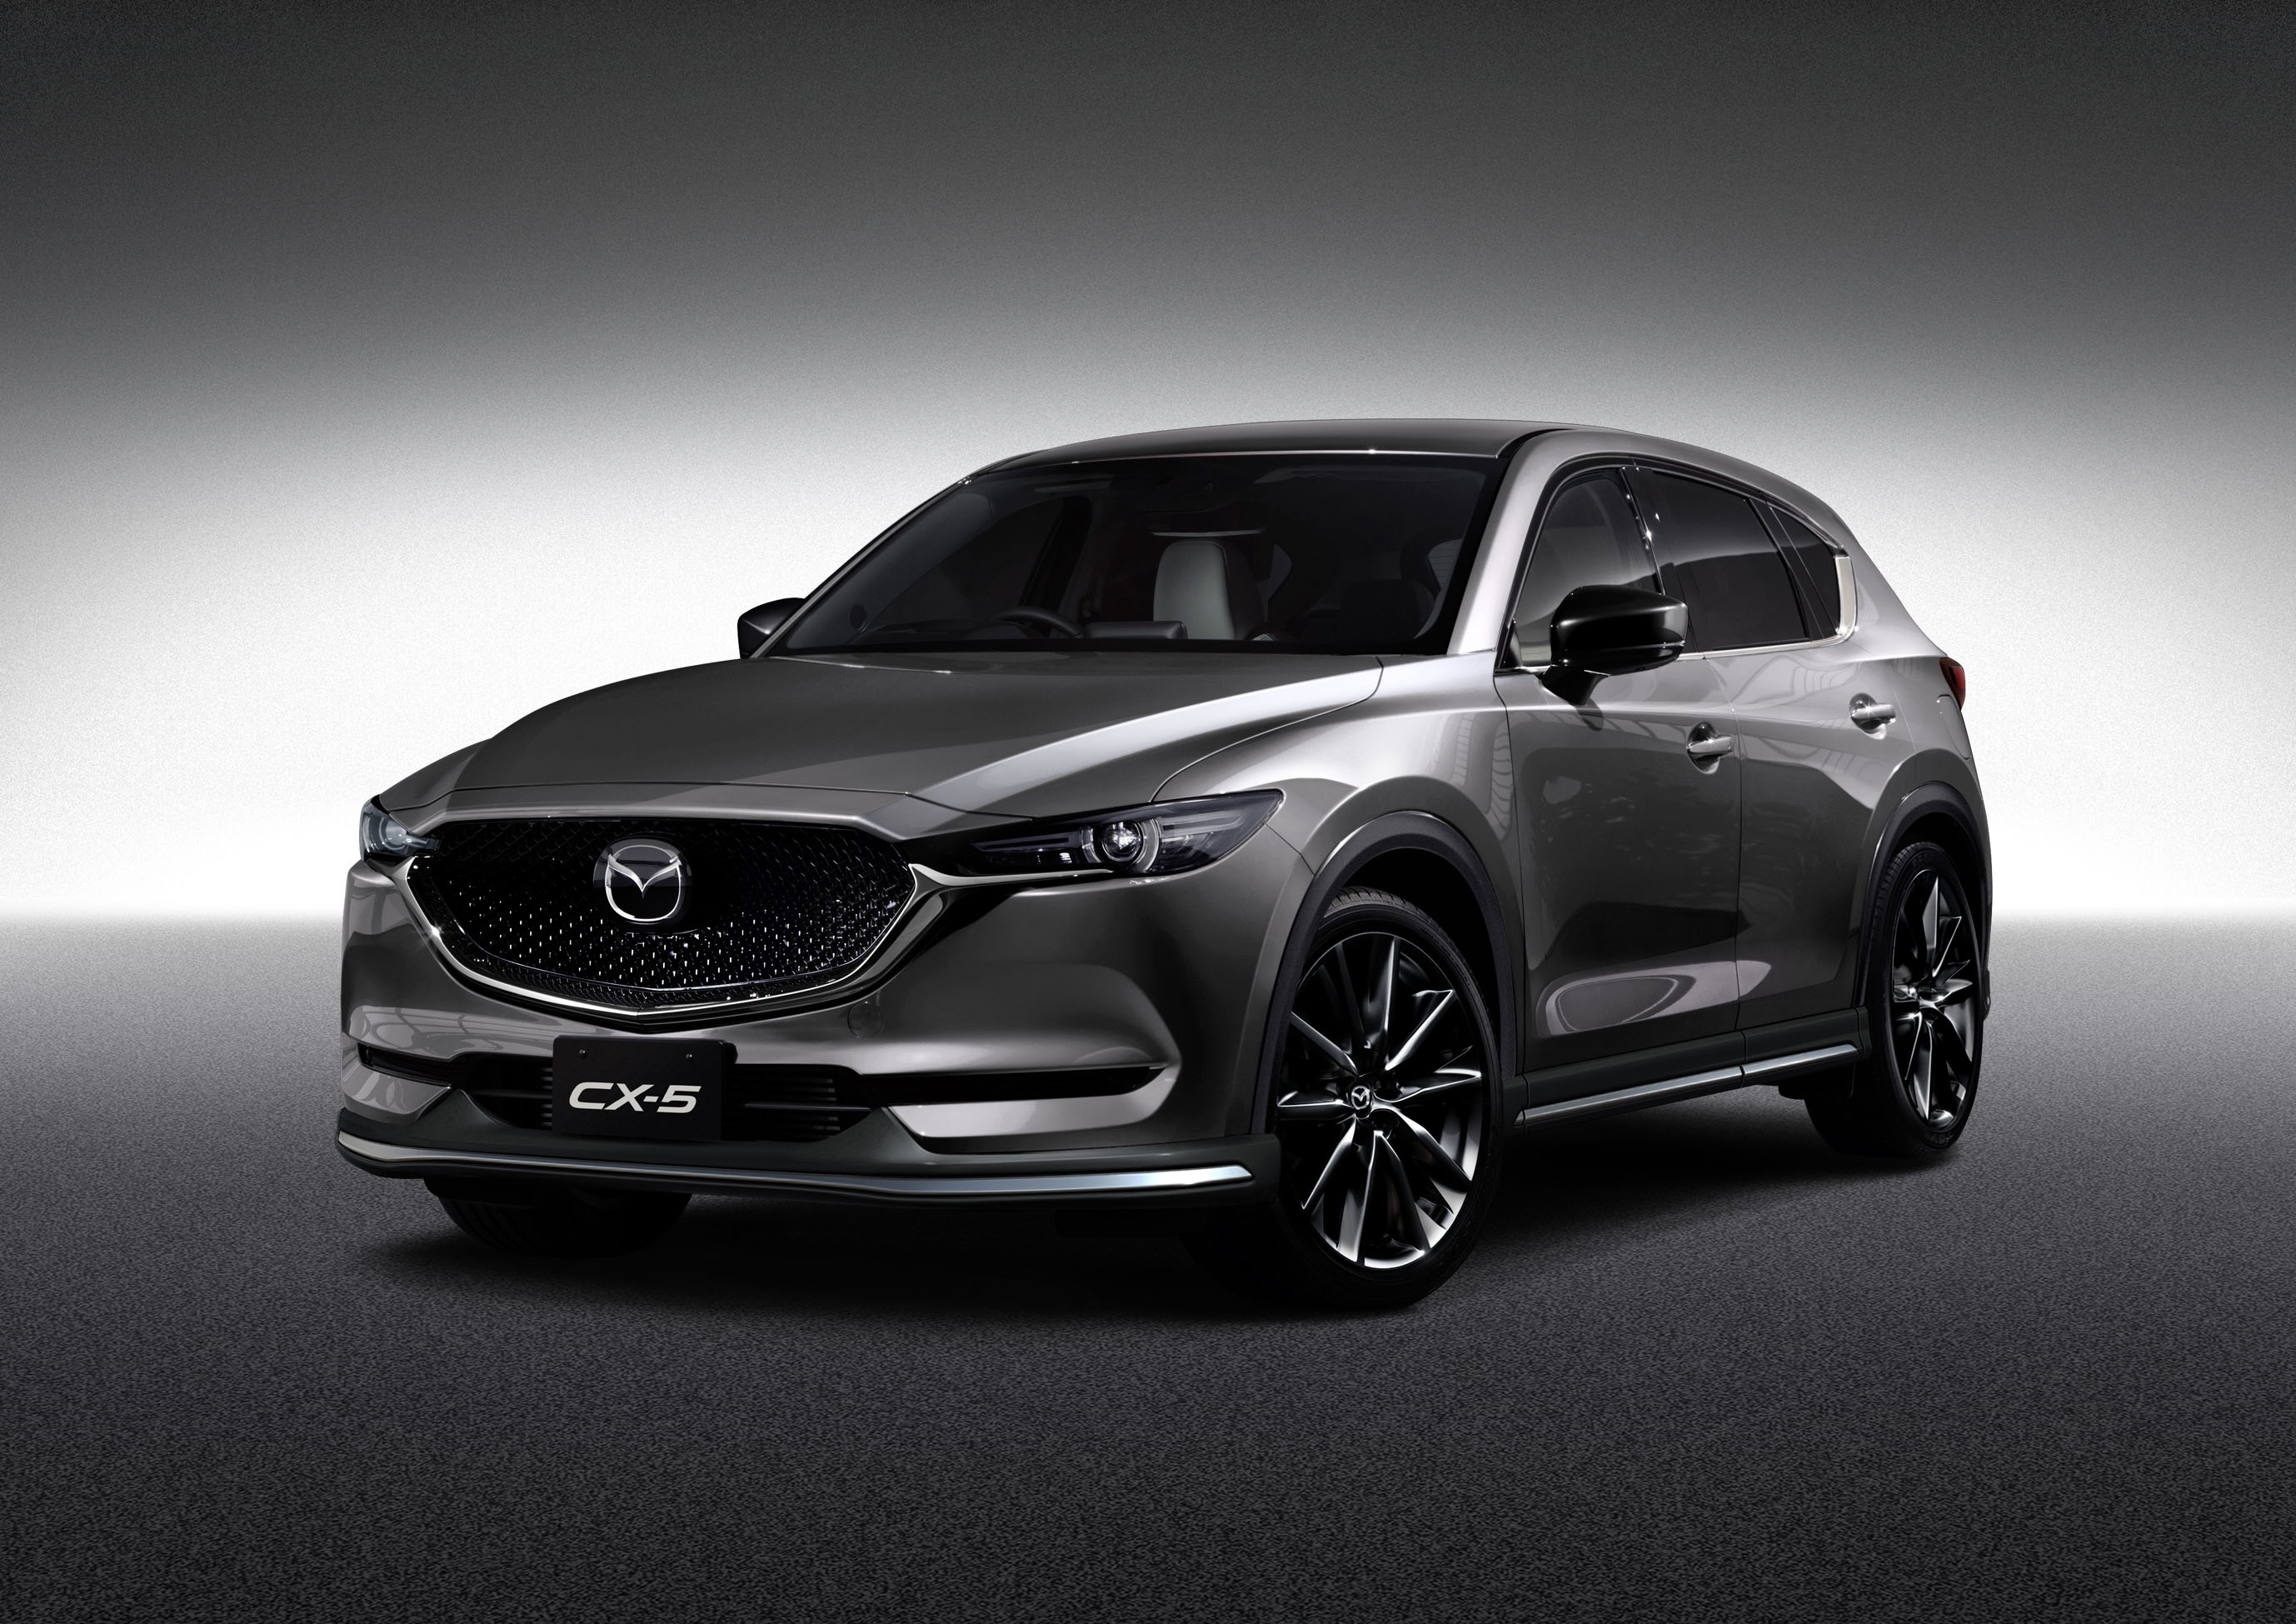 2756x1949 - Mazda CX-5 Wallpapers 3